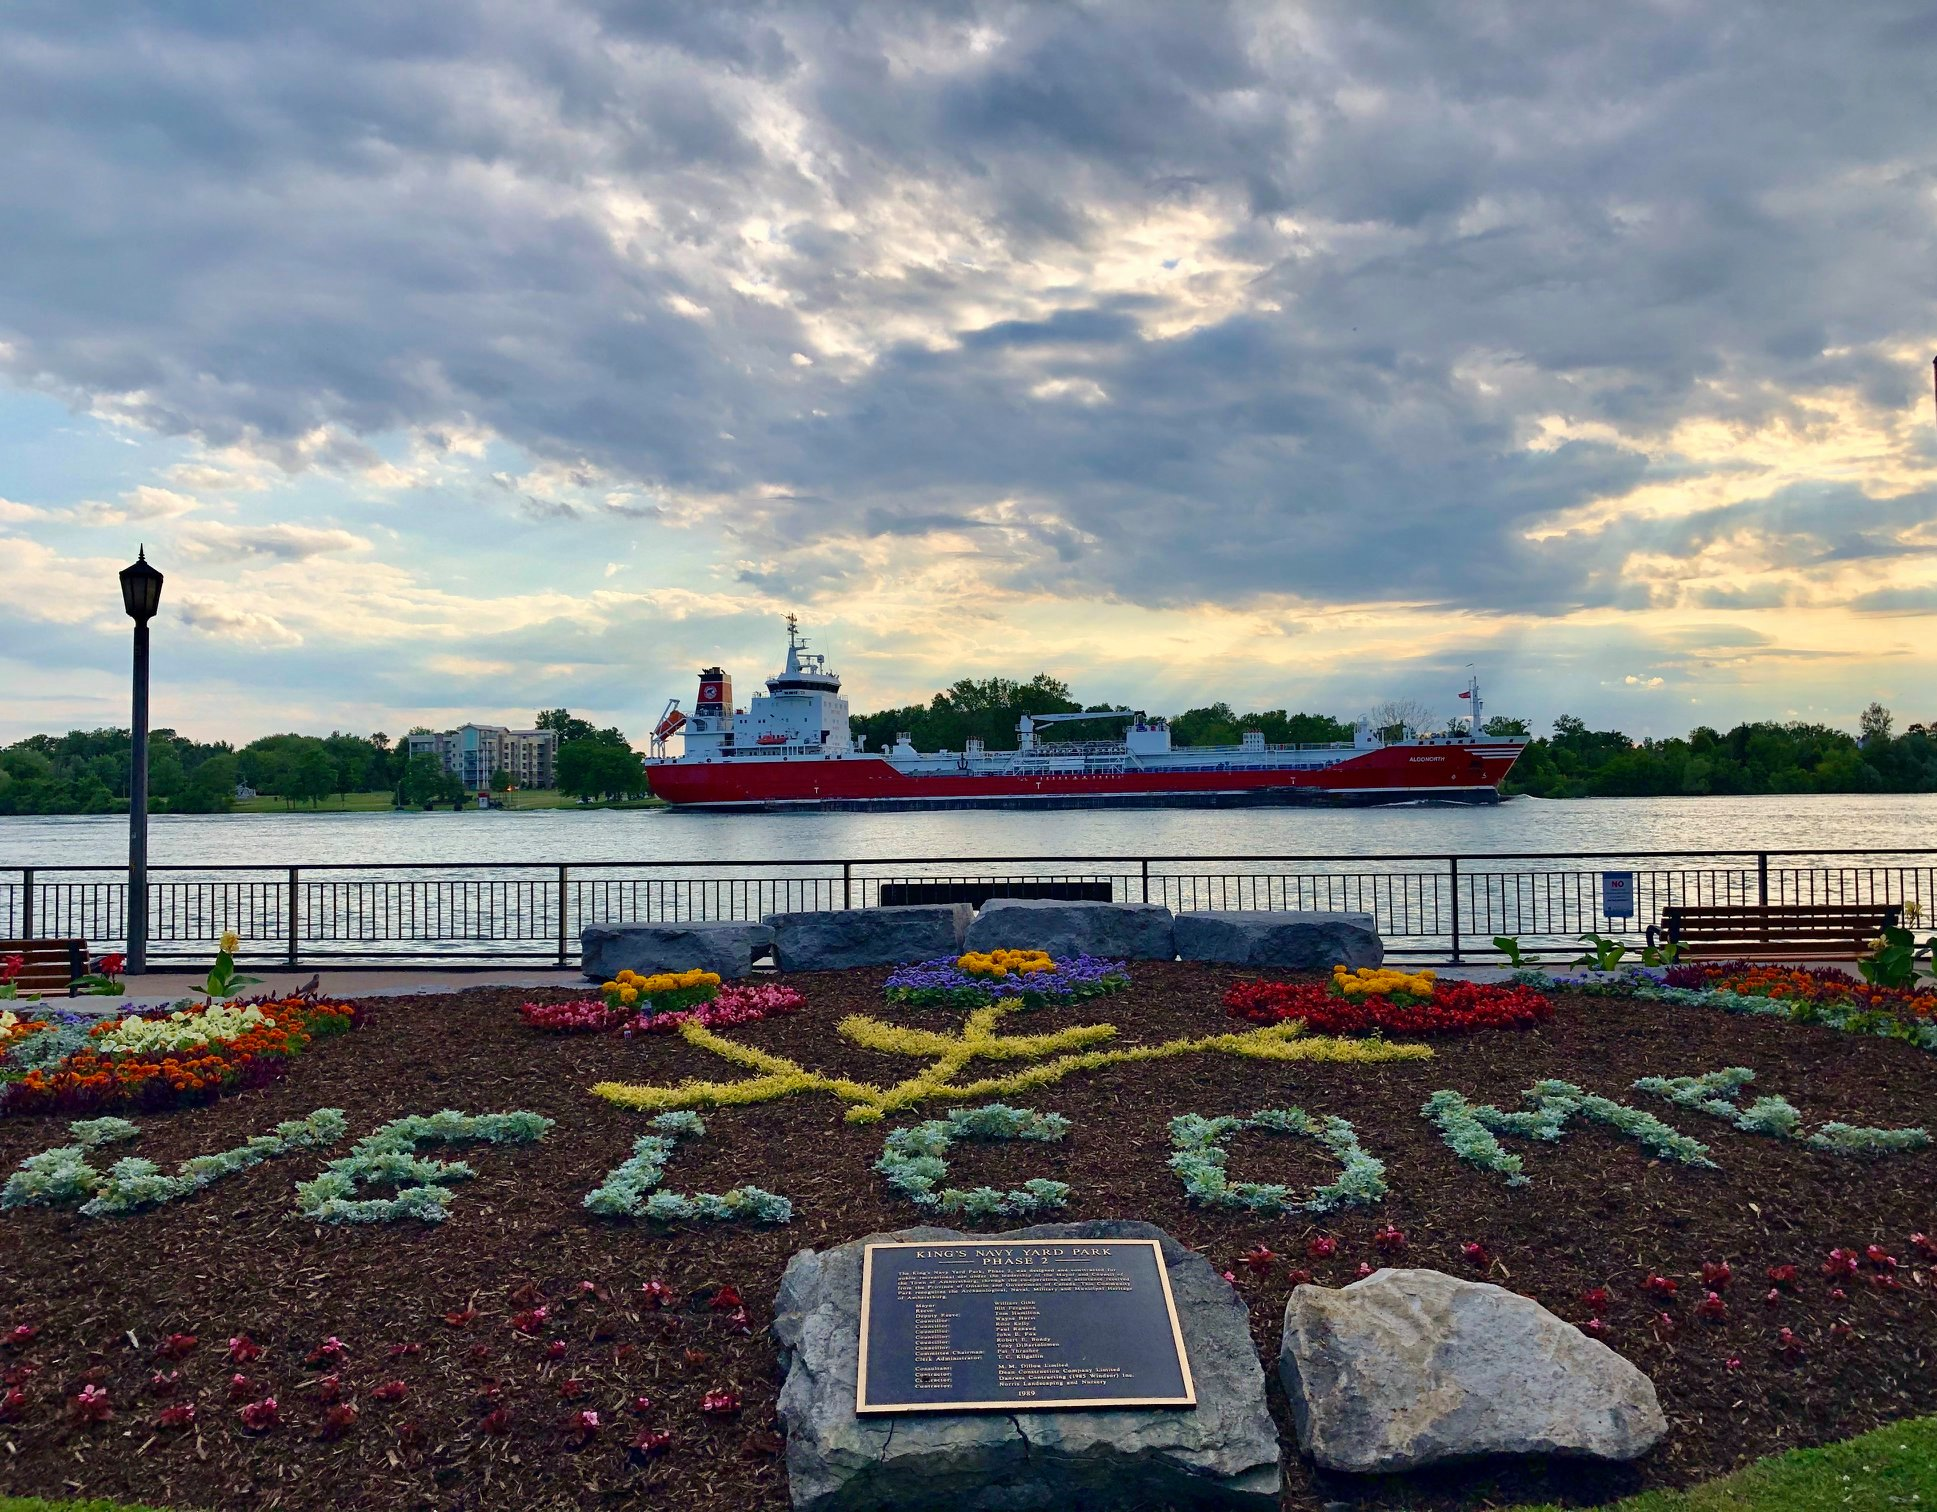 A Welcome garden in King's Navy Yard Park with a ship on the river in the background